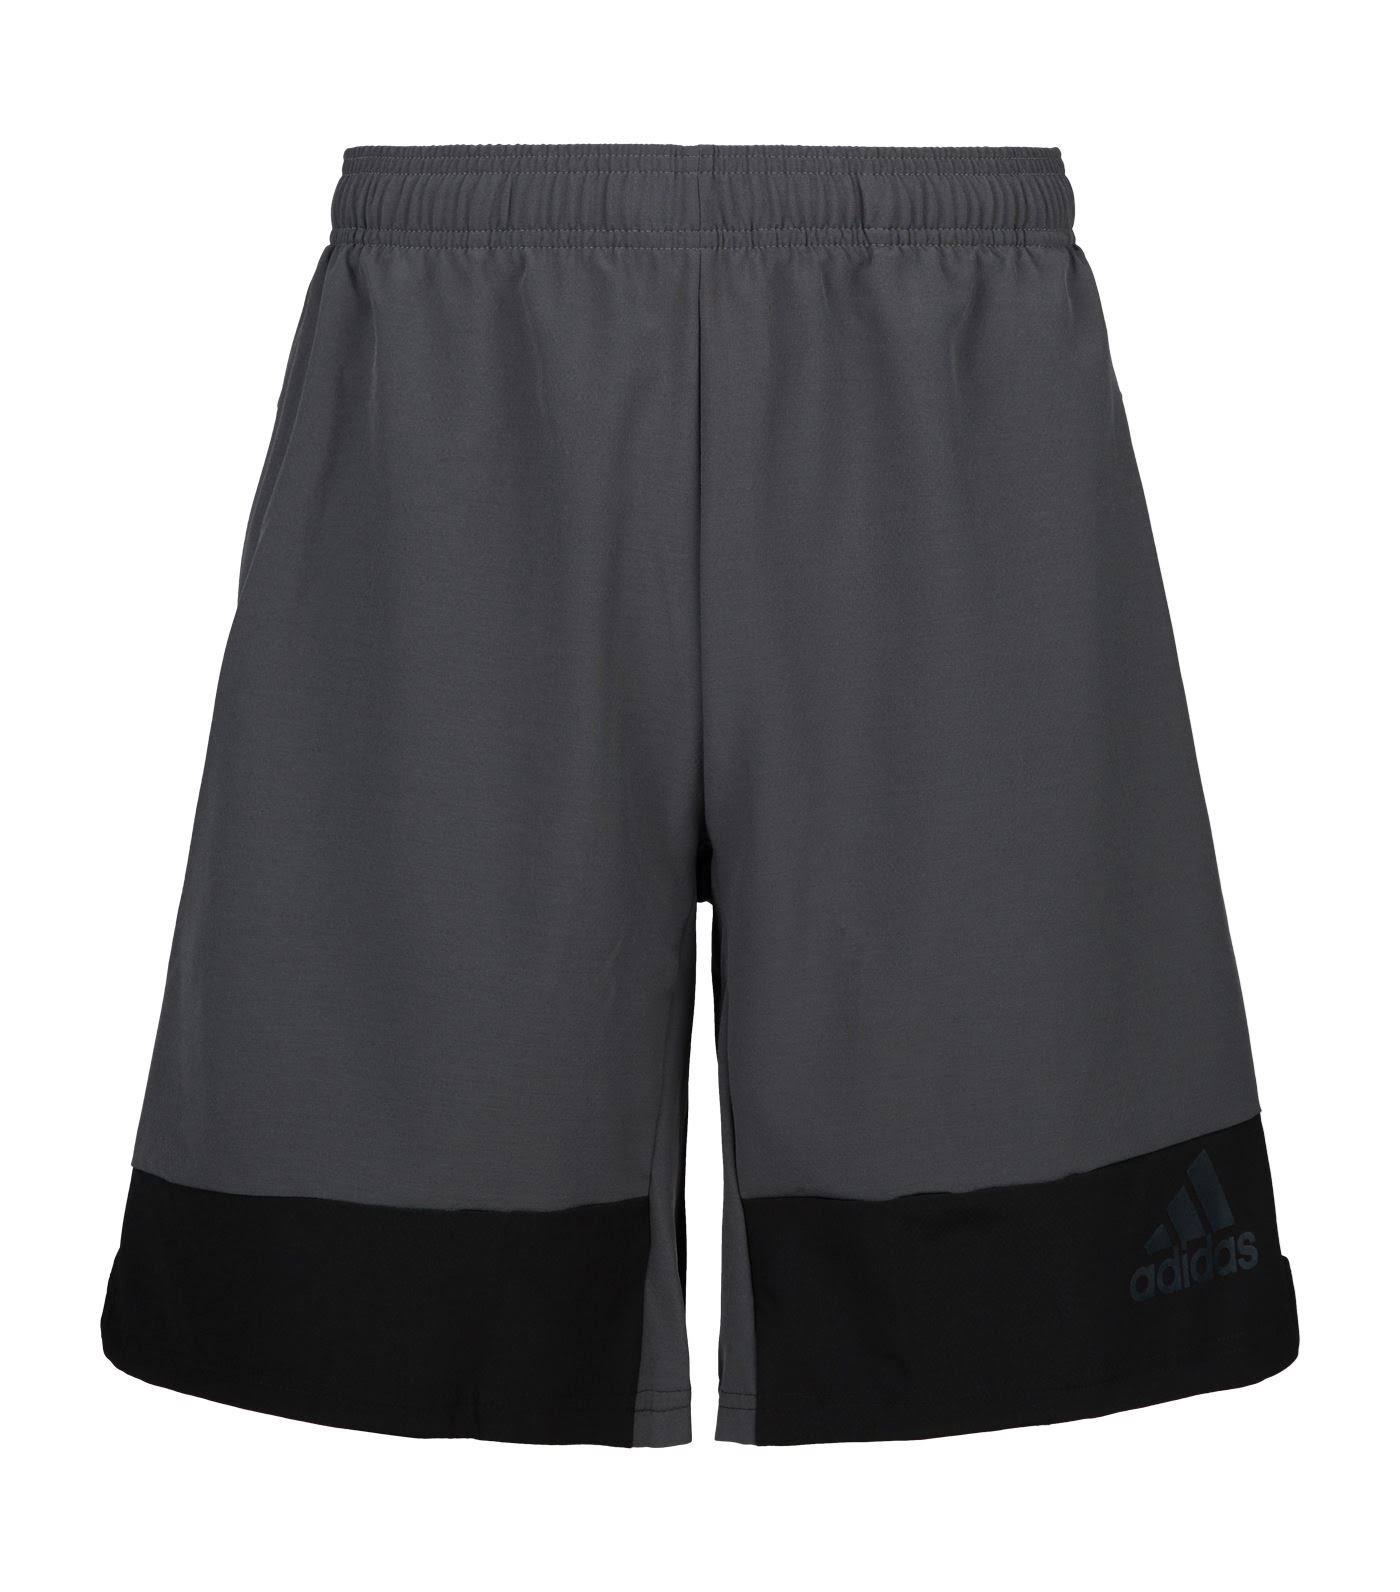 Grissix Gris 4krft Technique Adidas Originals Short nXwvSqHH